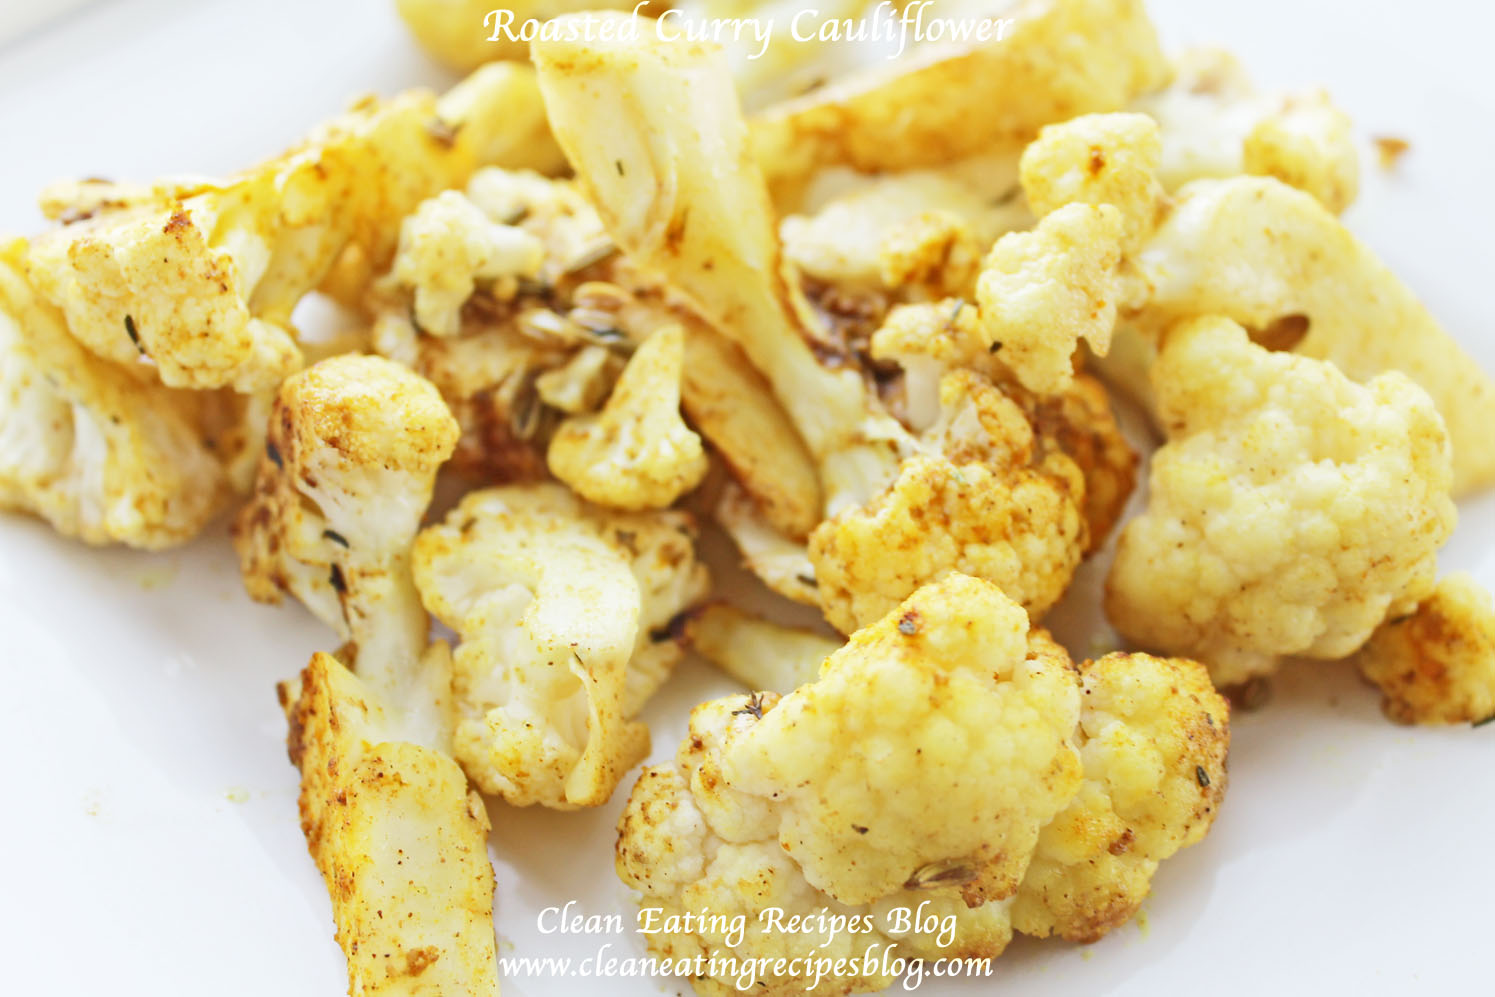 Clean Eating Recipe – Roasted Curry Cauliflower